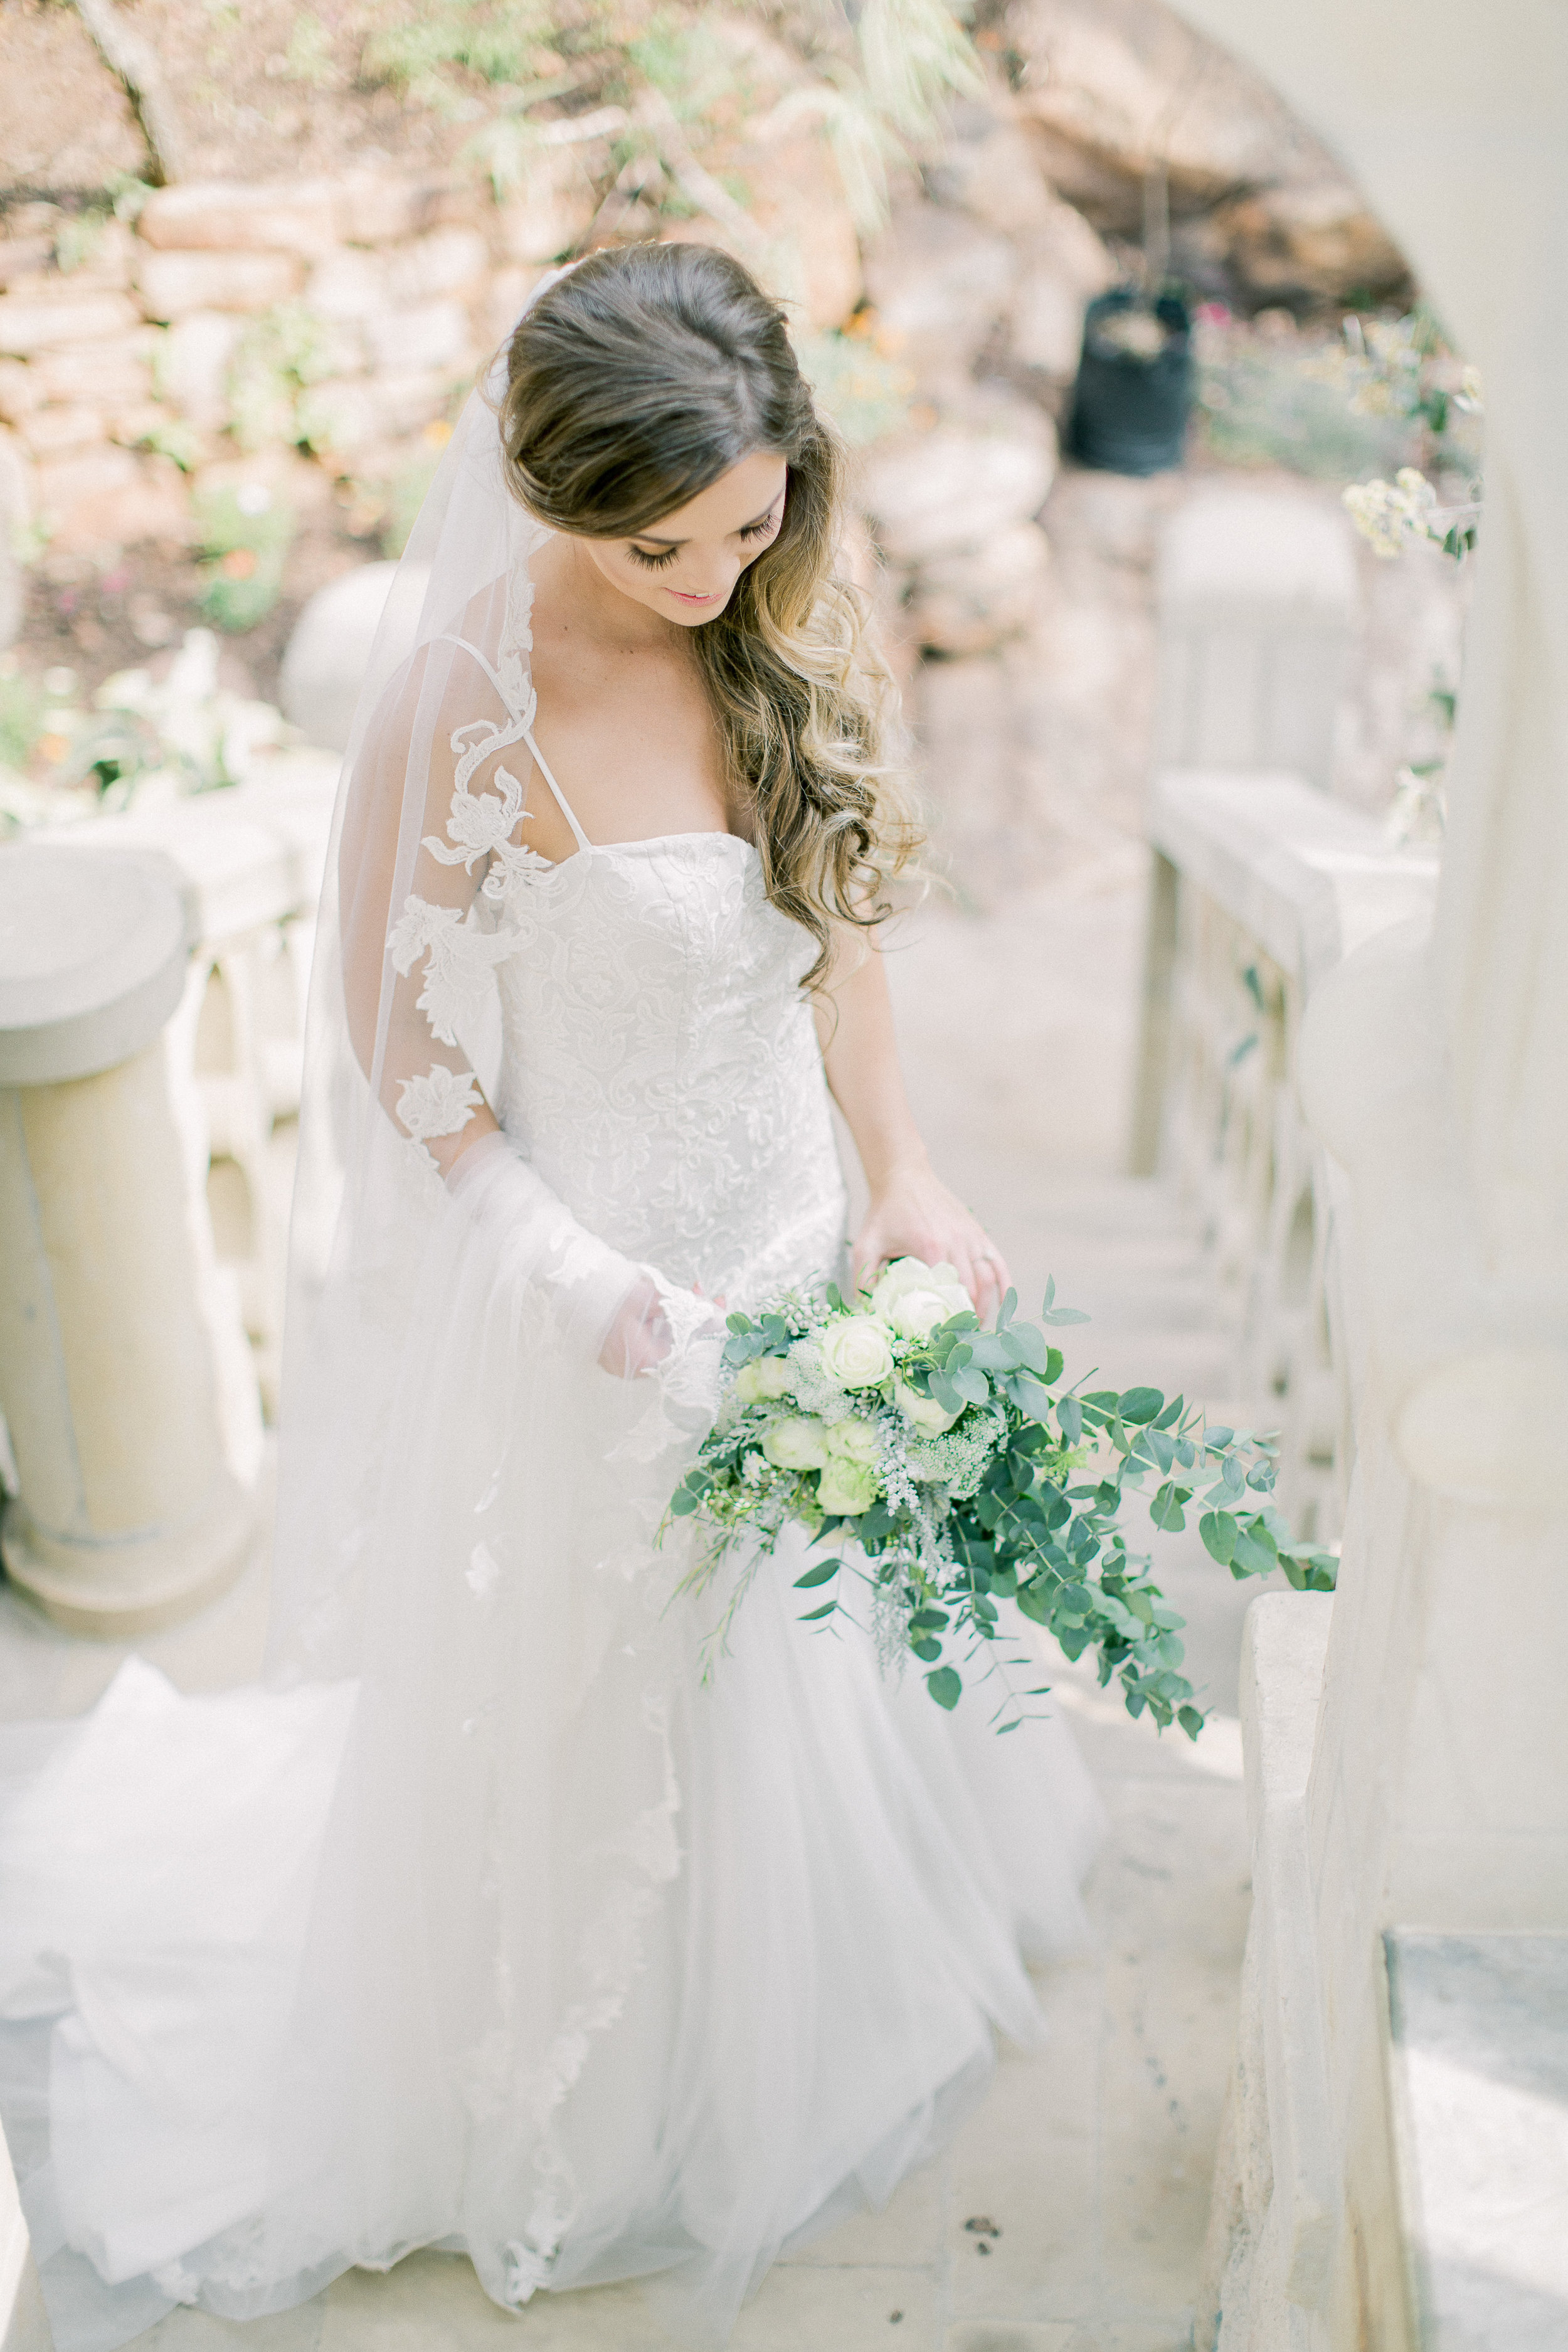 South africa wedding photographer clareece smit photography29.jpg